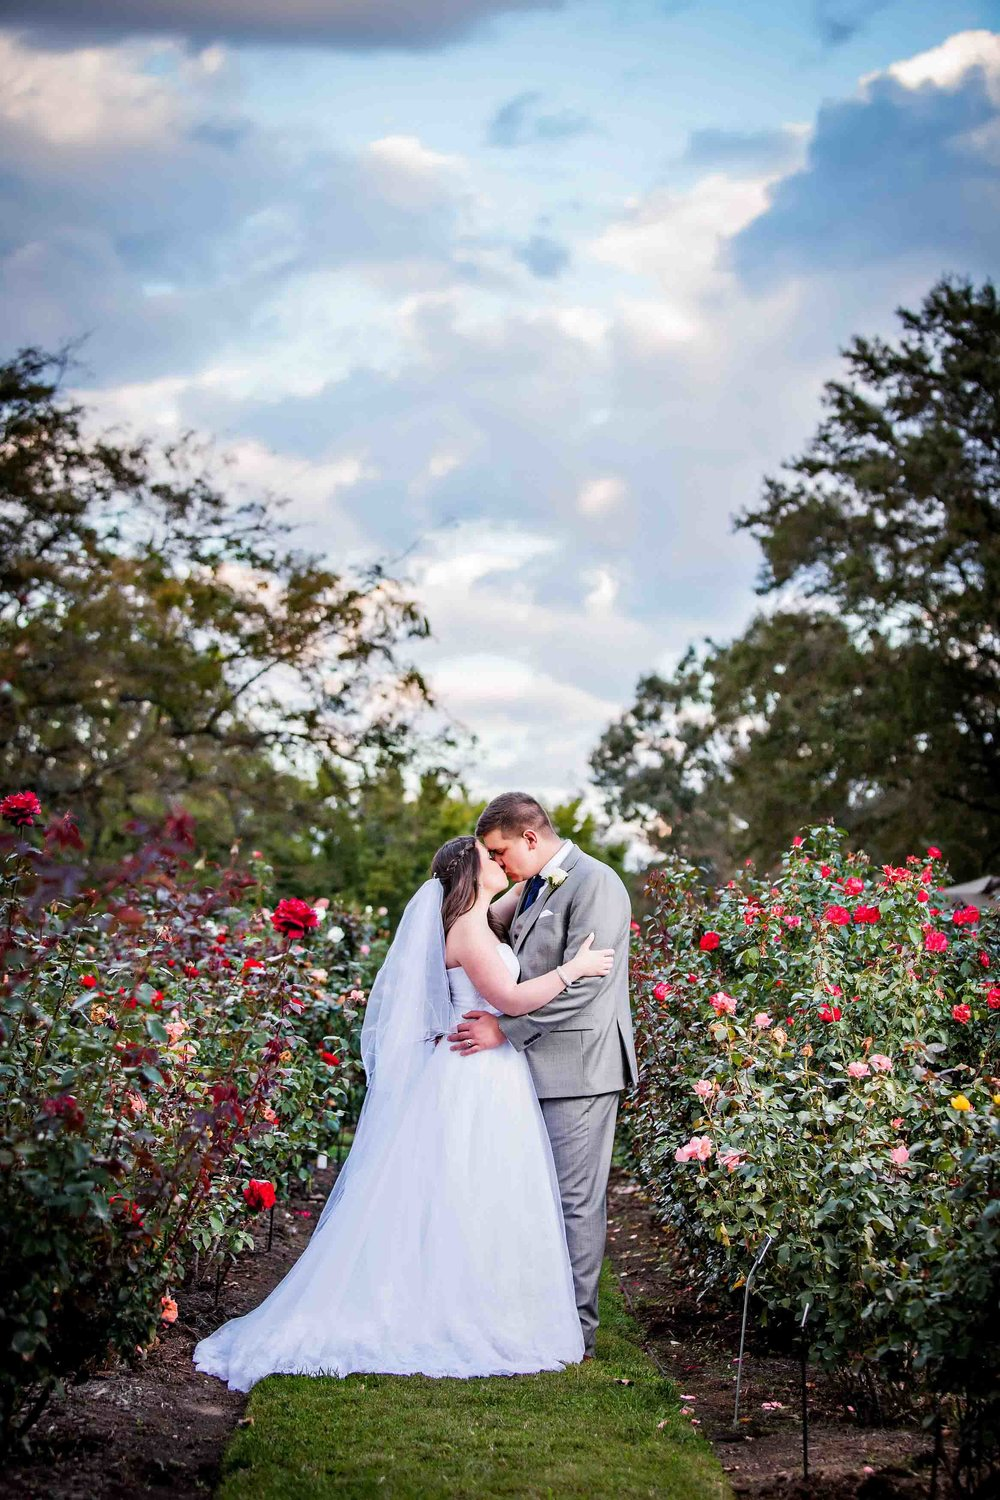 Norfolk Botanical Garden Wedding Photograph - Samantha And Greg - by John Cachero for Ross Costanza Photography